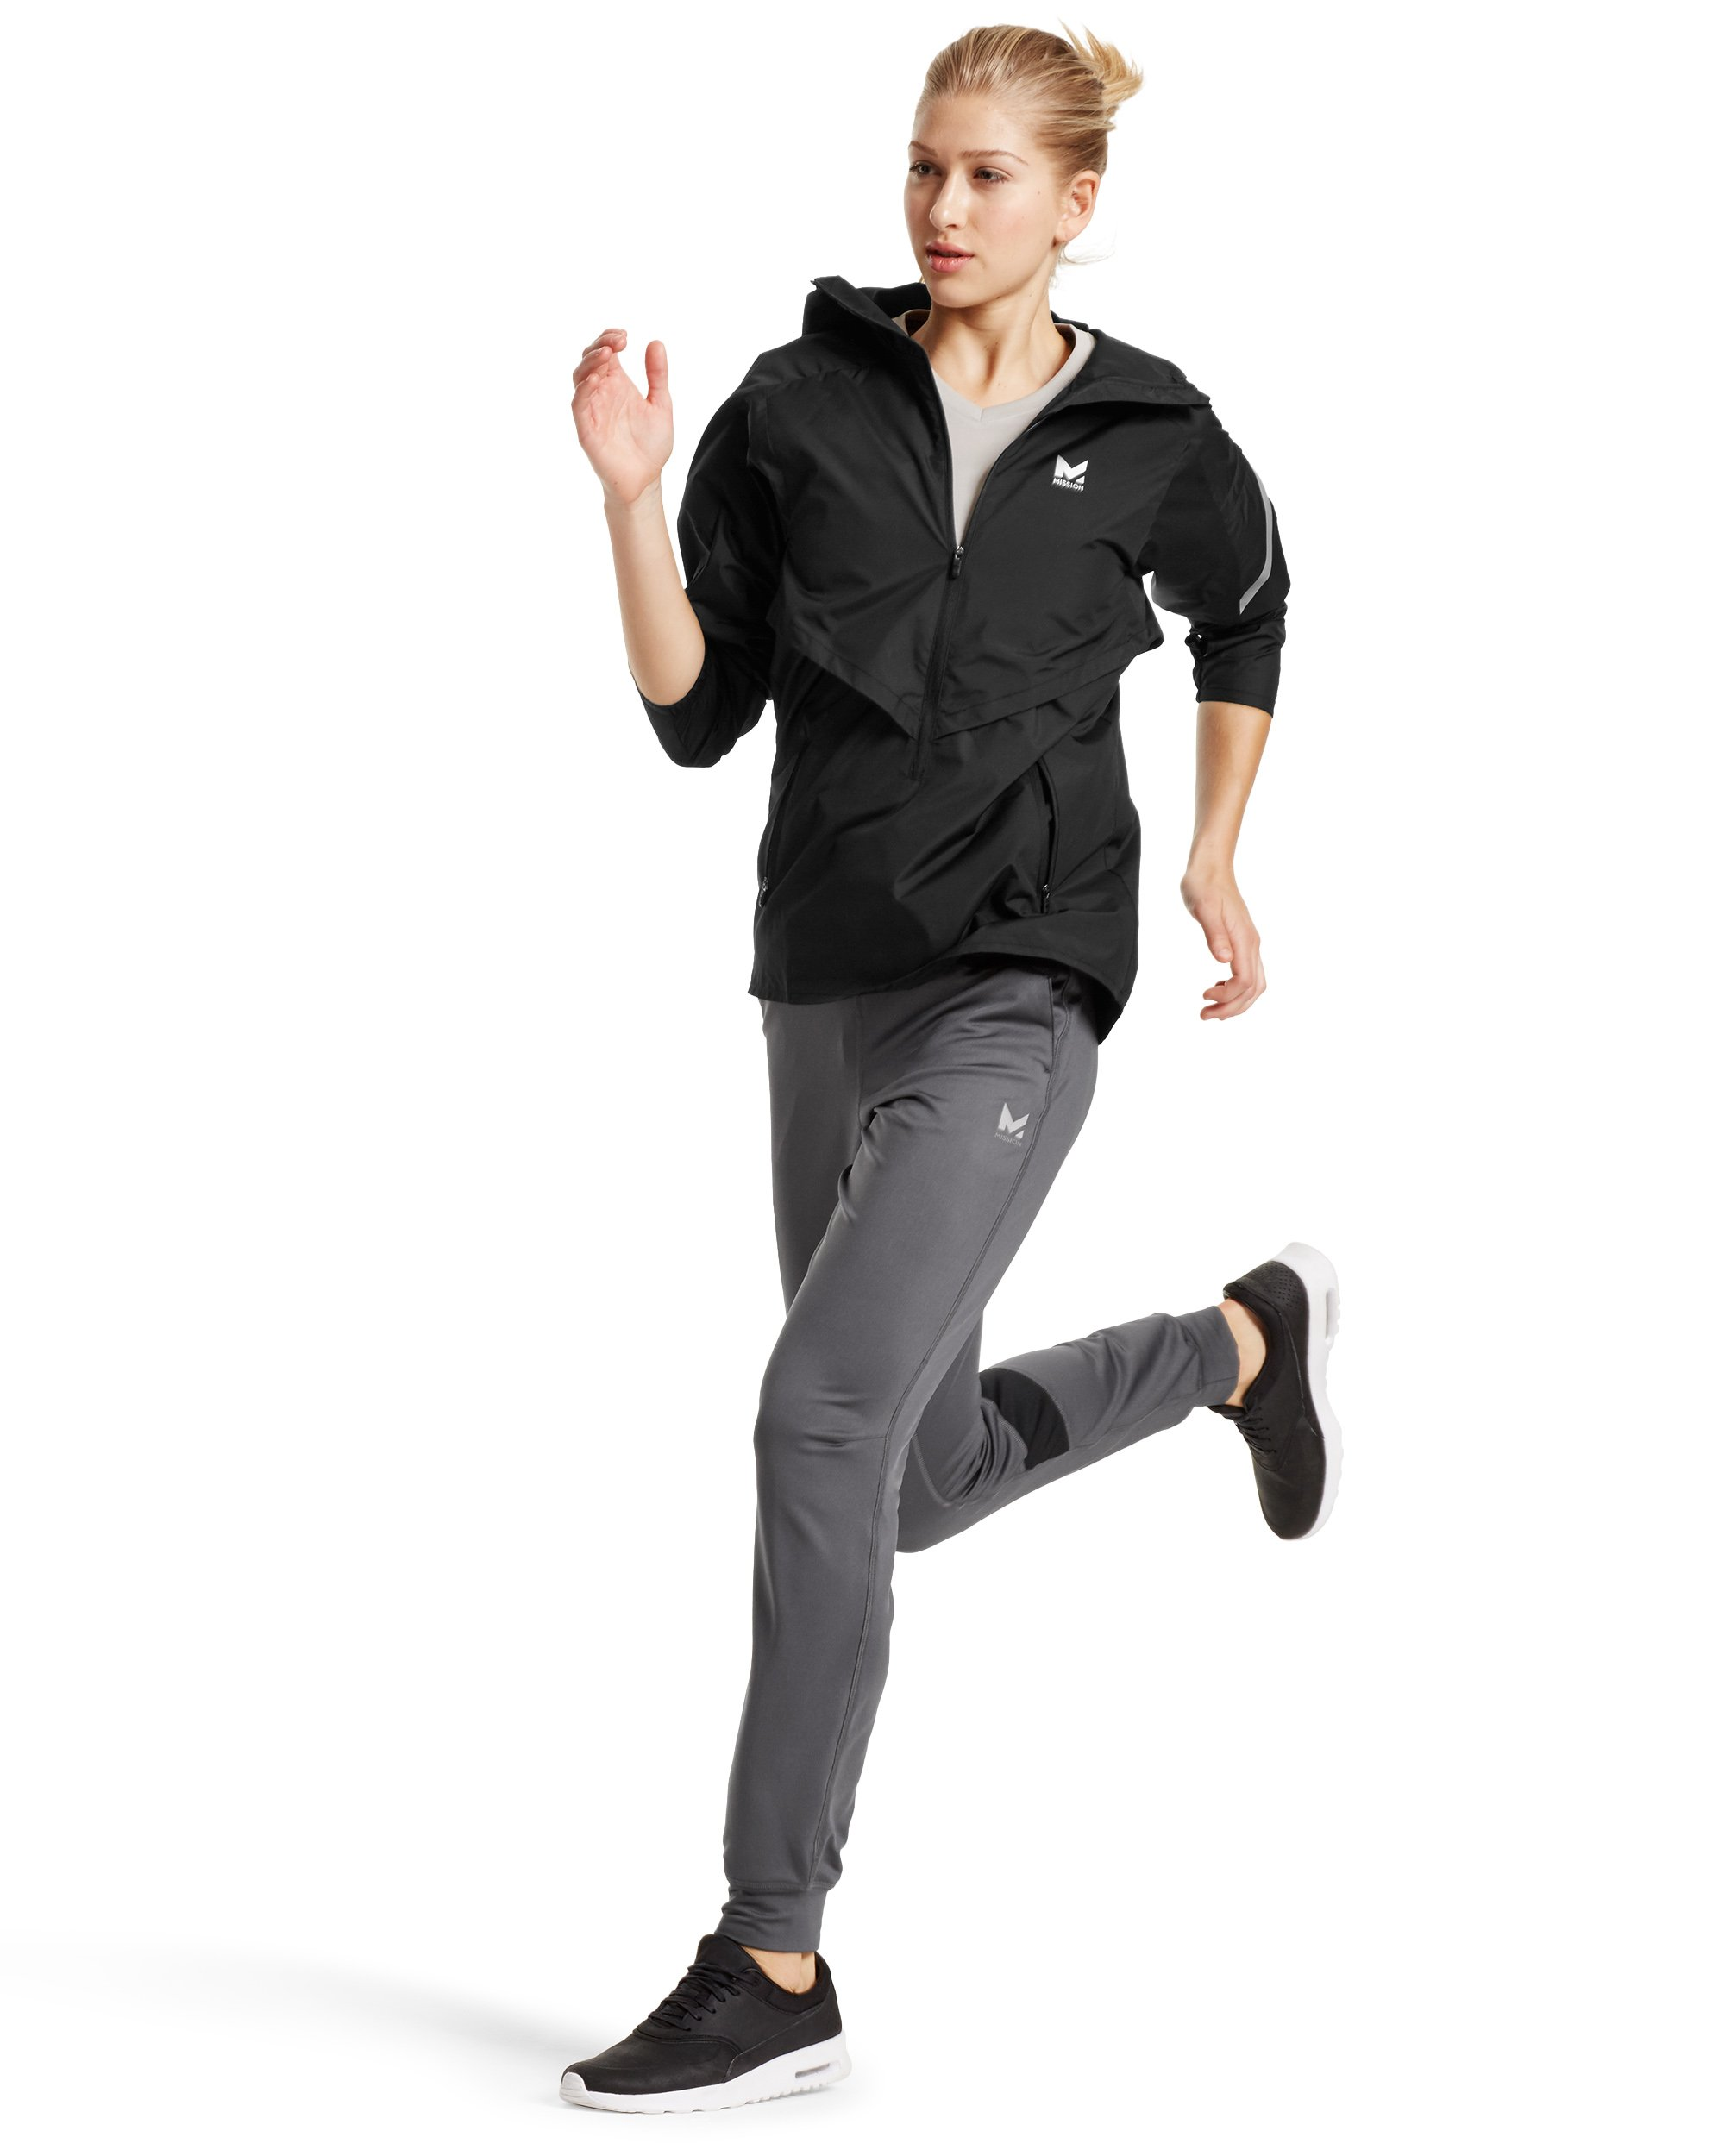 Mission Women's VaporActive Barometer Running Jacket, Moonless Night, Large by MISSION (Image #4)